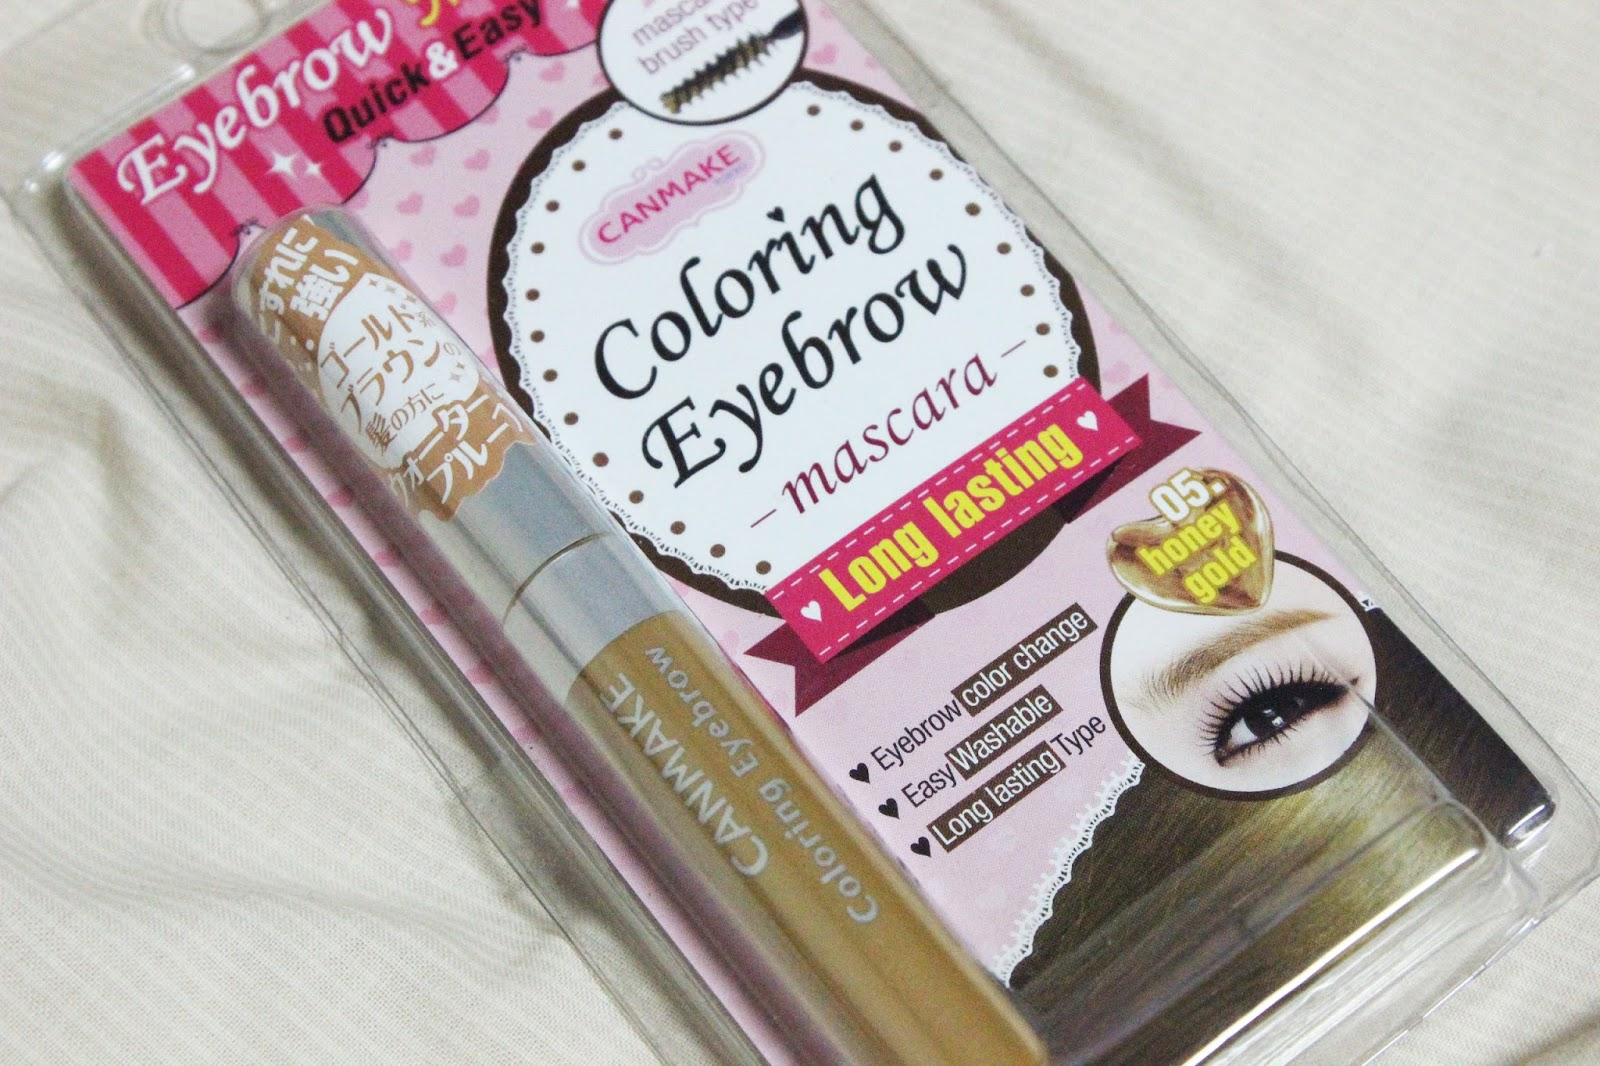 My Sugarcoffee Review Canmake Coloring Eyebrow Mascara